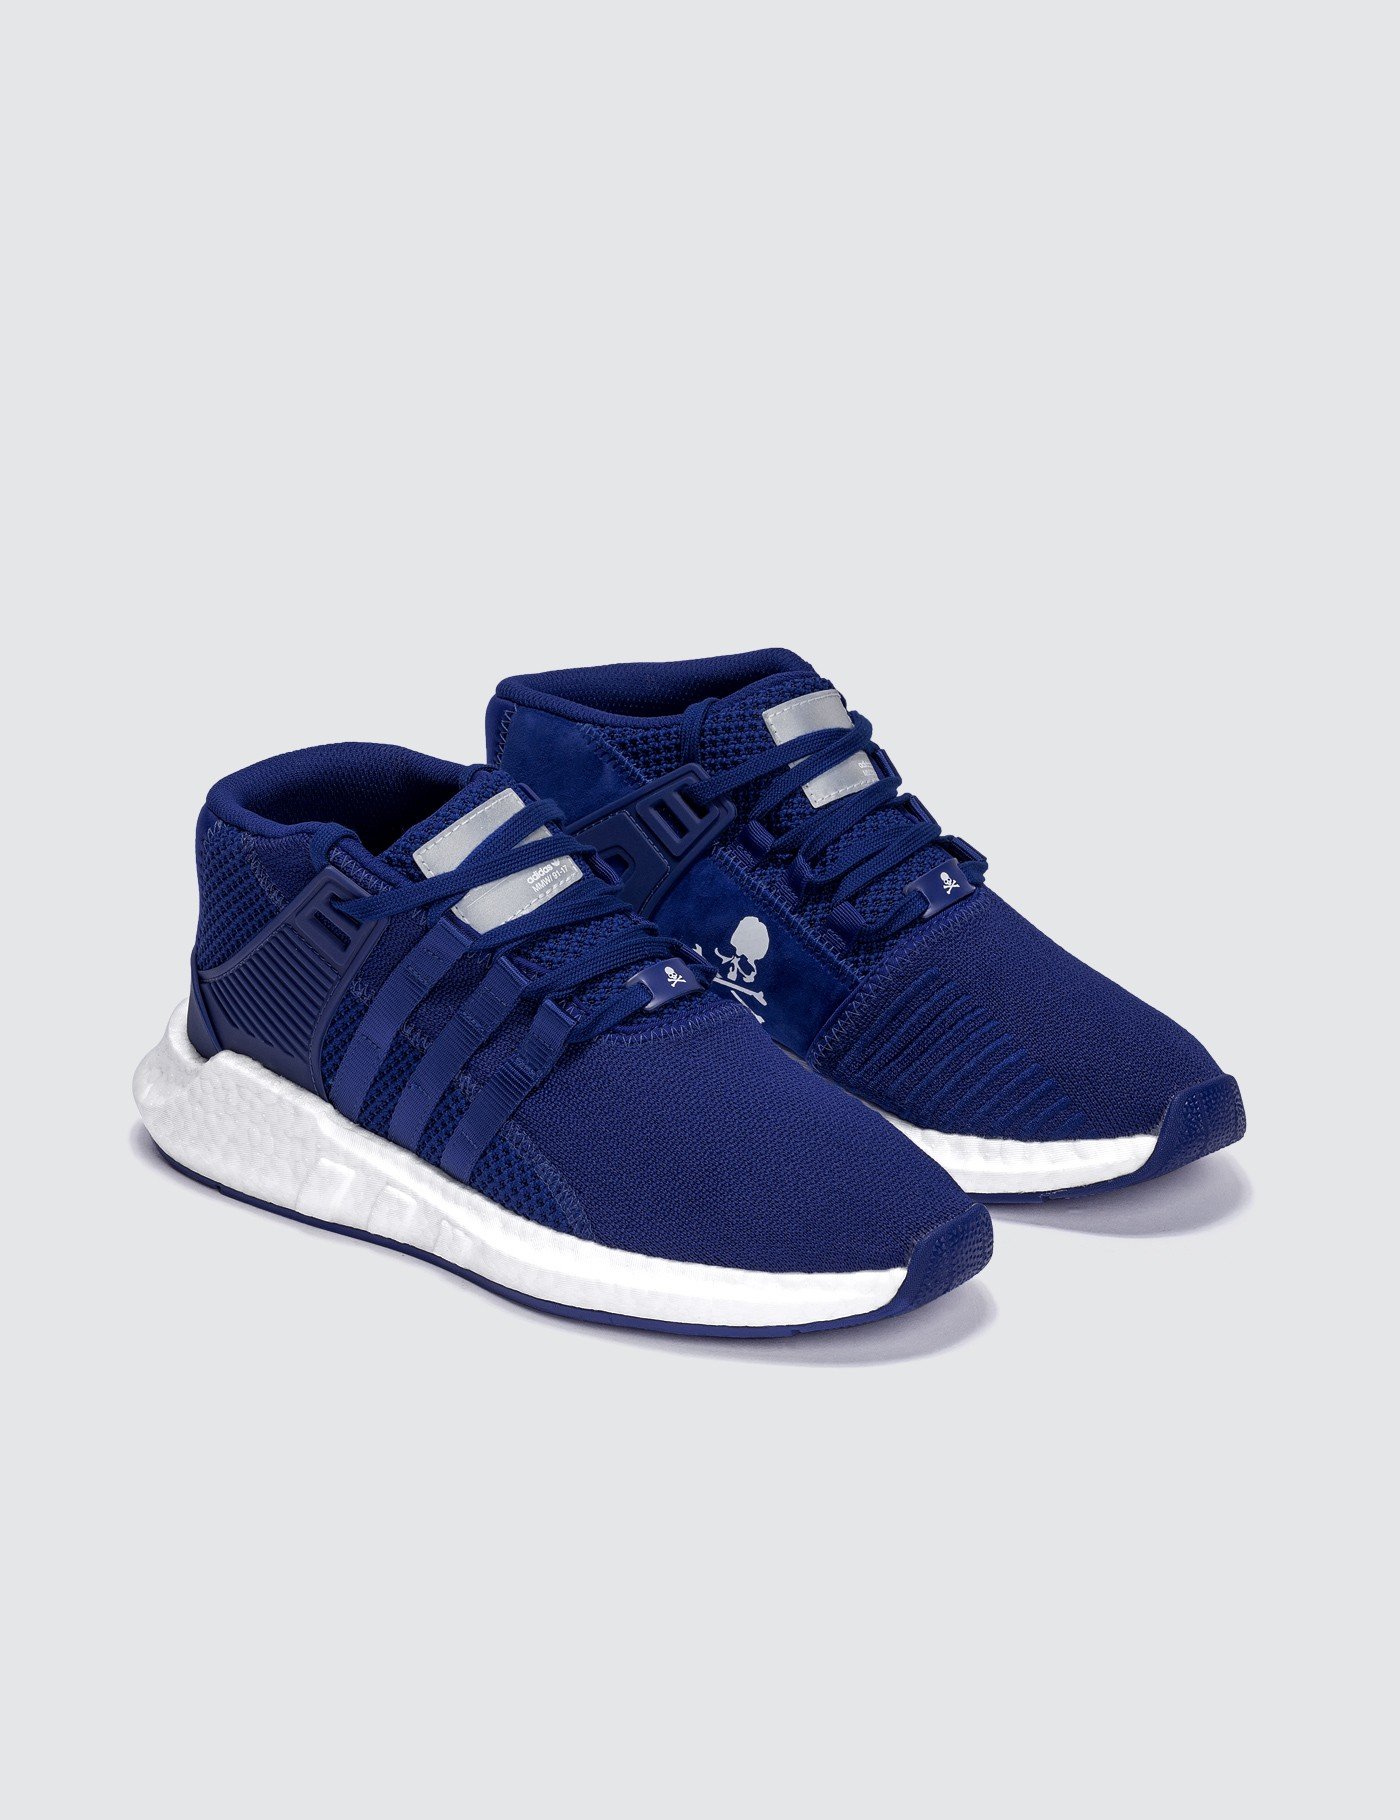 lowest price 95bc5 281e2 Adidas Originals X Mastermind World EQT Support 93/17, Adidas Originals x  Mastermind World